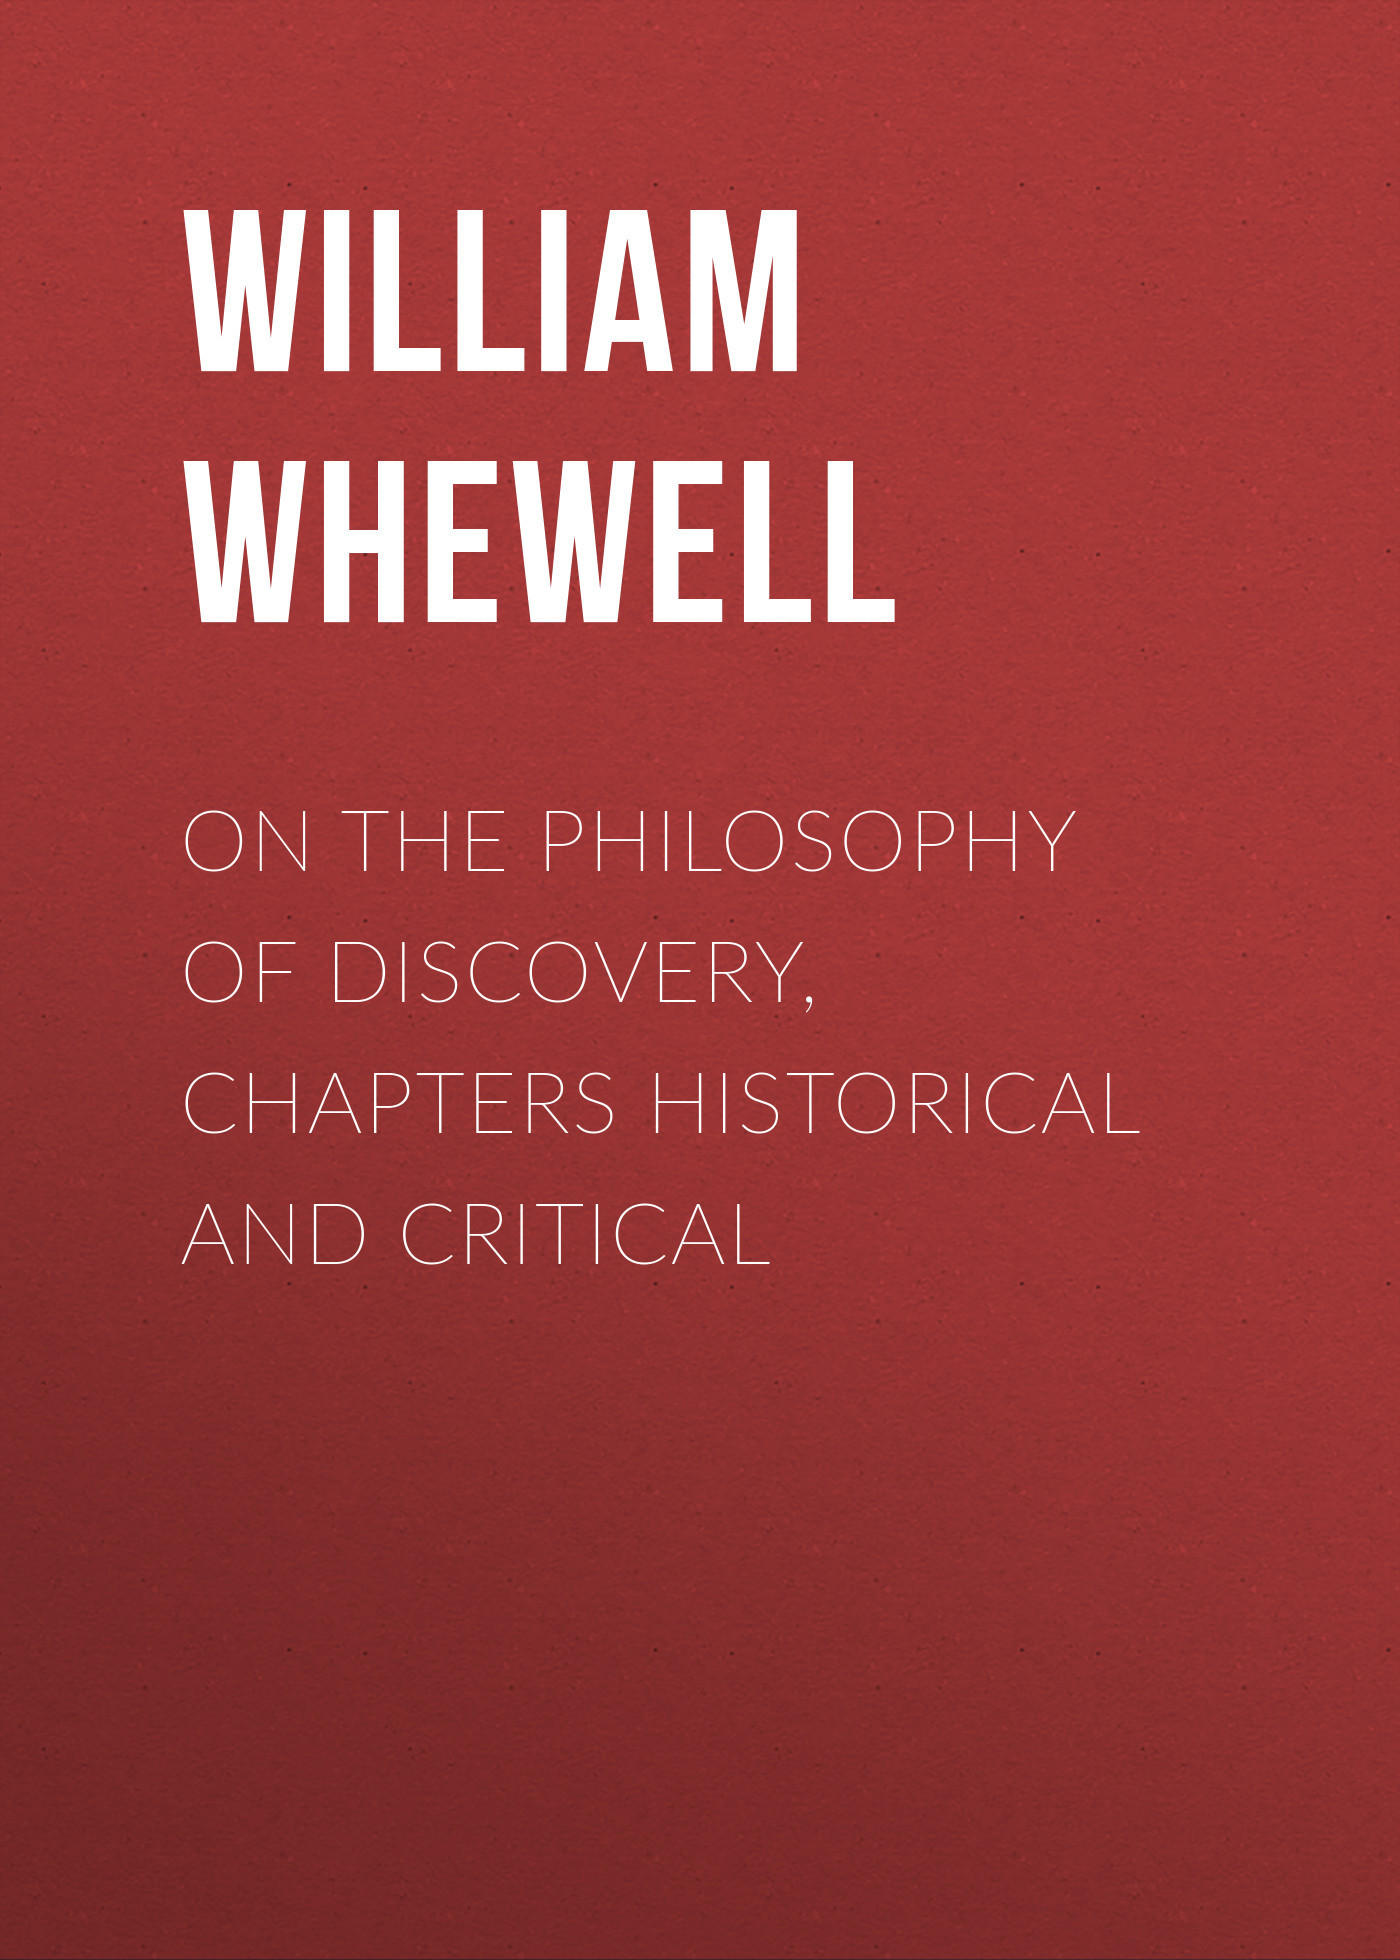 William Whewell On the Philosophy of Discovery, Chapters Historical and Critical dreamfall chapters [ps4]